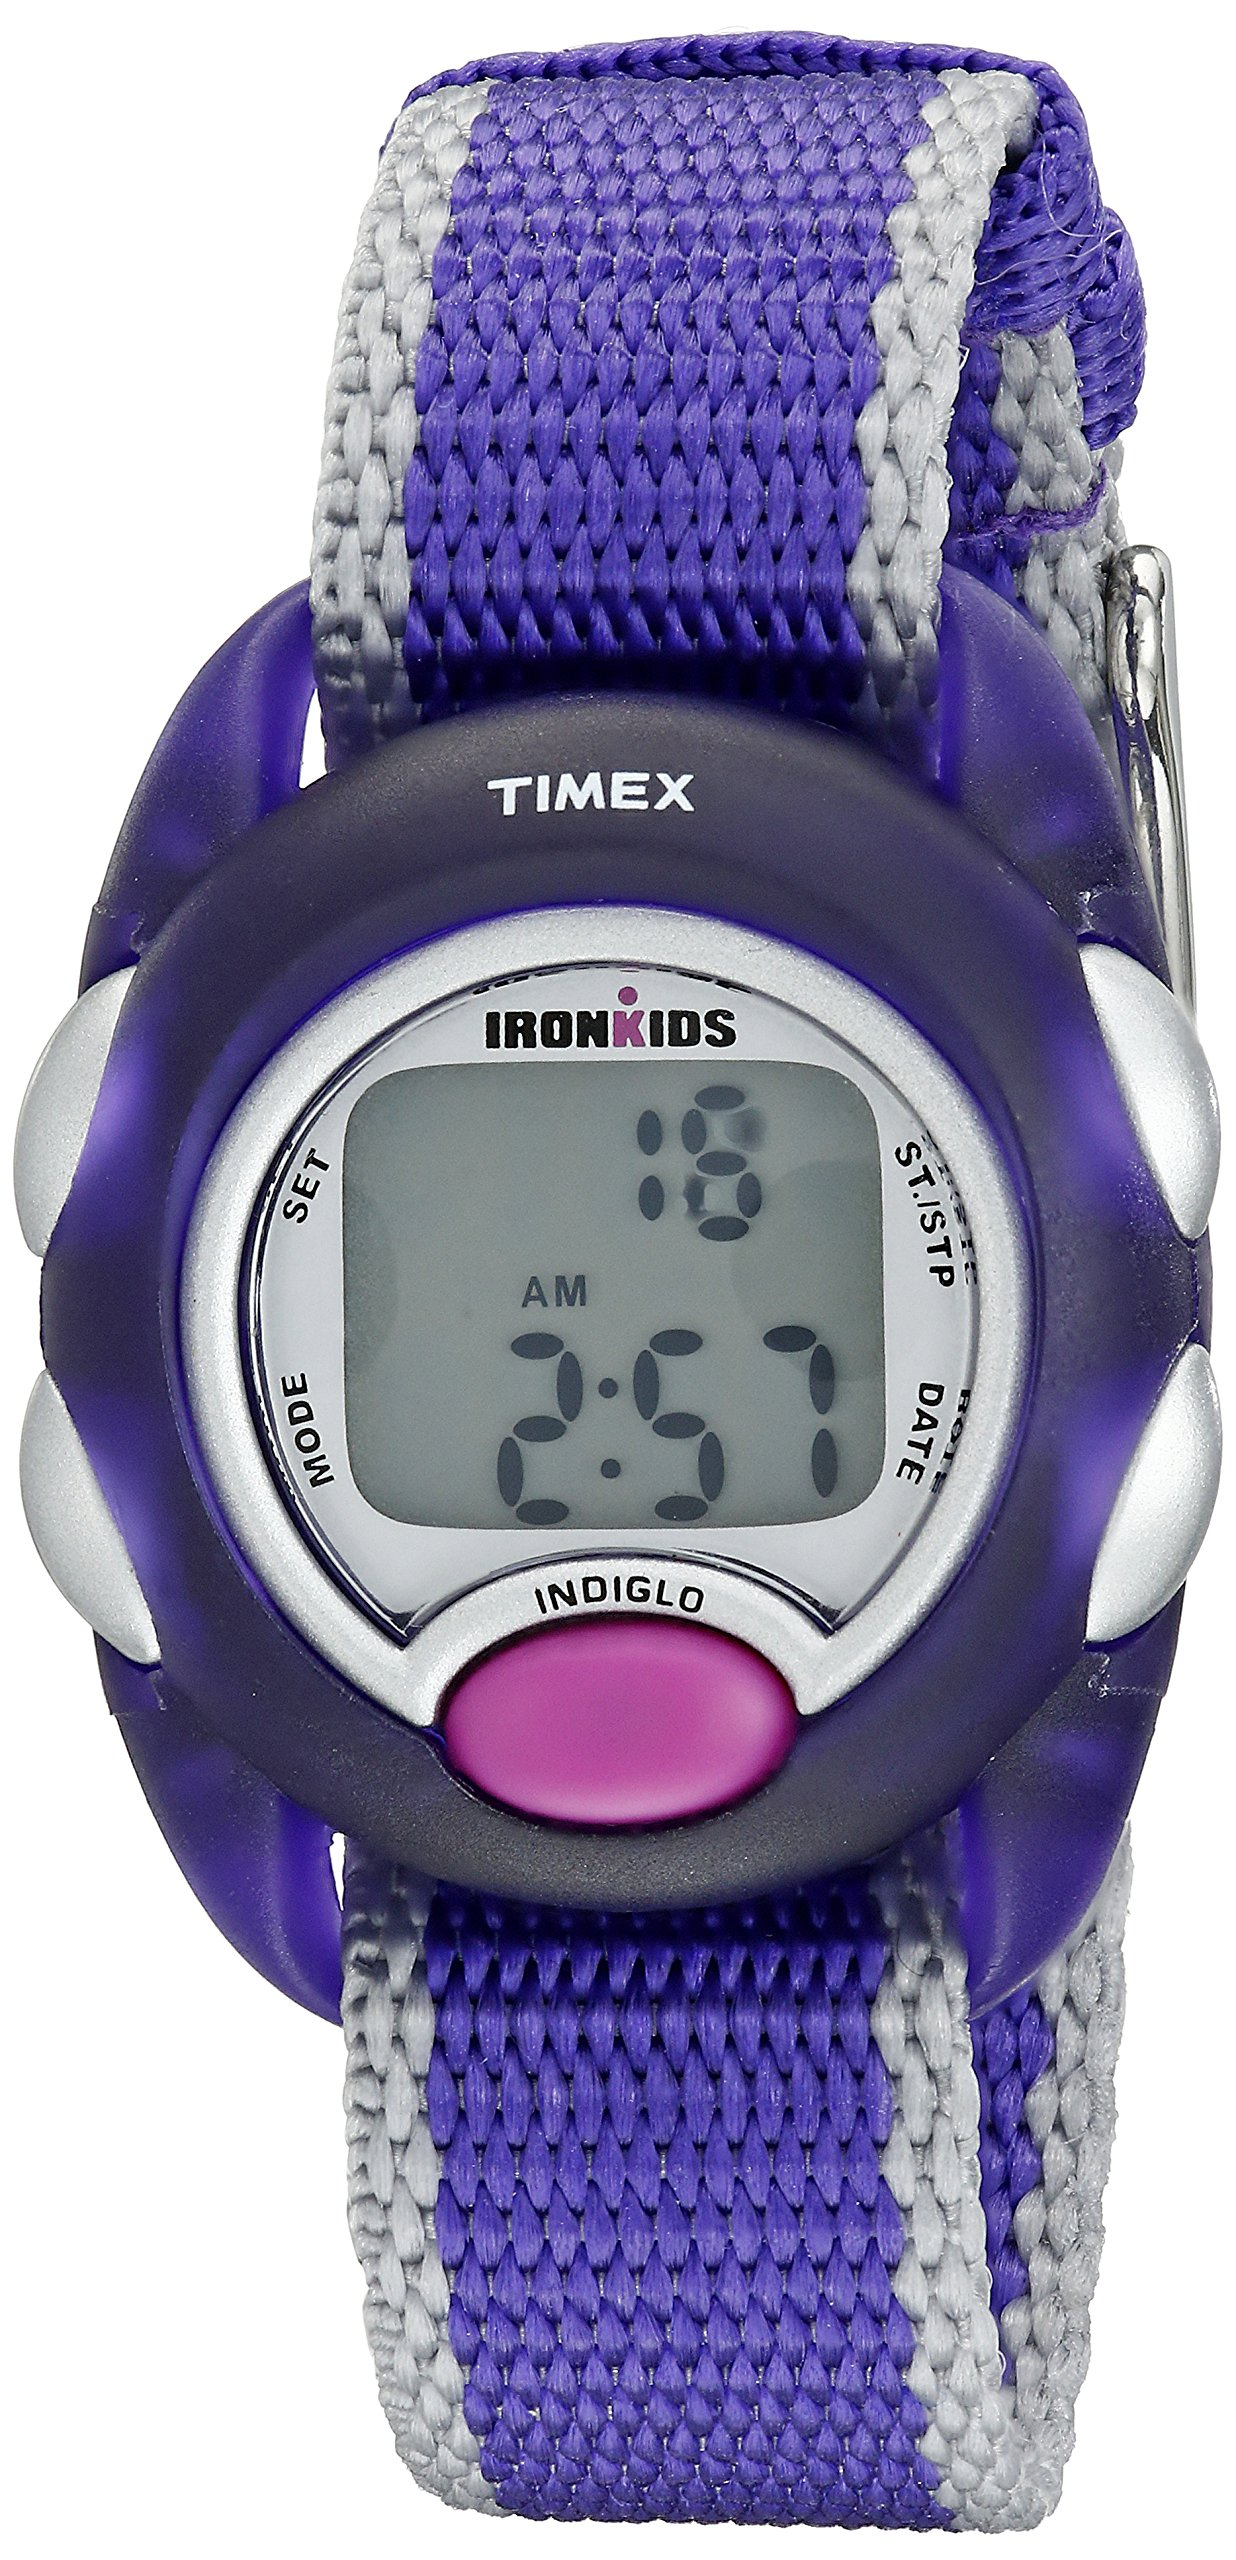 Timex Kids' T7B9839J IronKids Translucent Purple Resin Watch by Timex